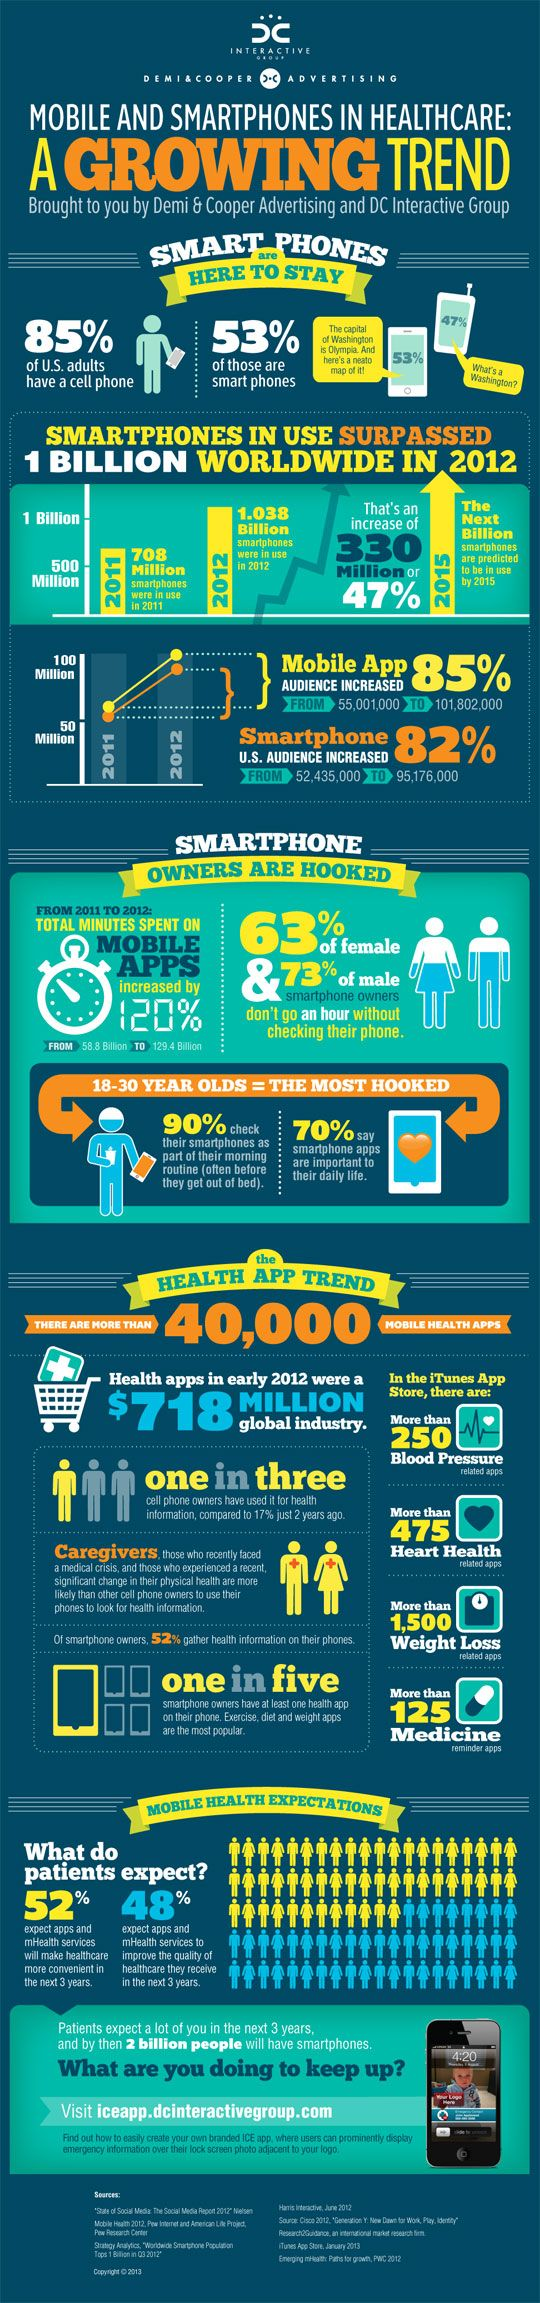 mobile and smartphones in healthcare #healthcare #infographic